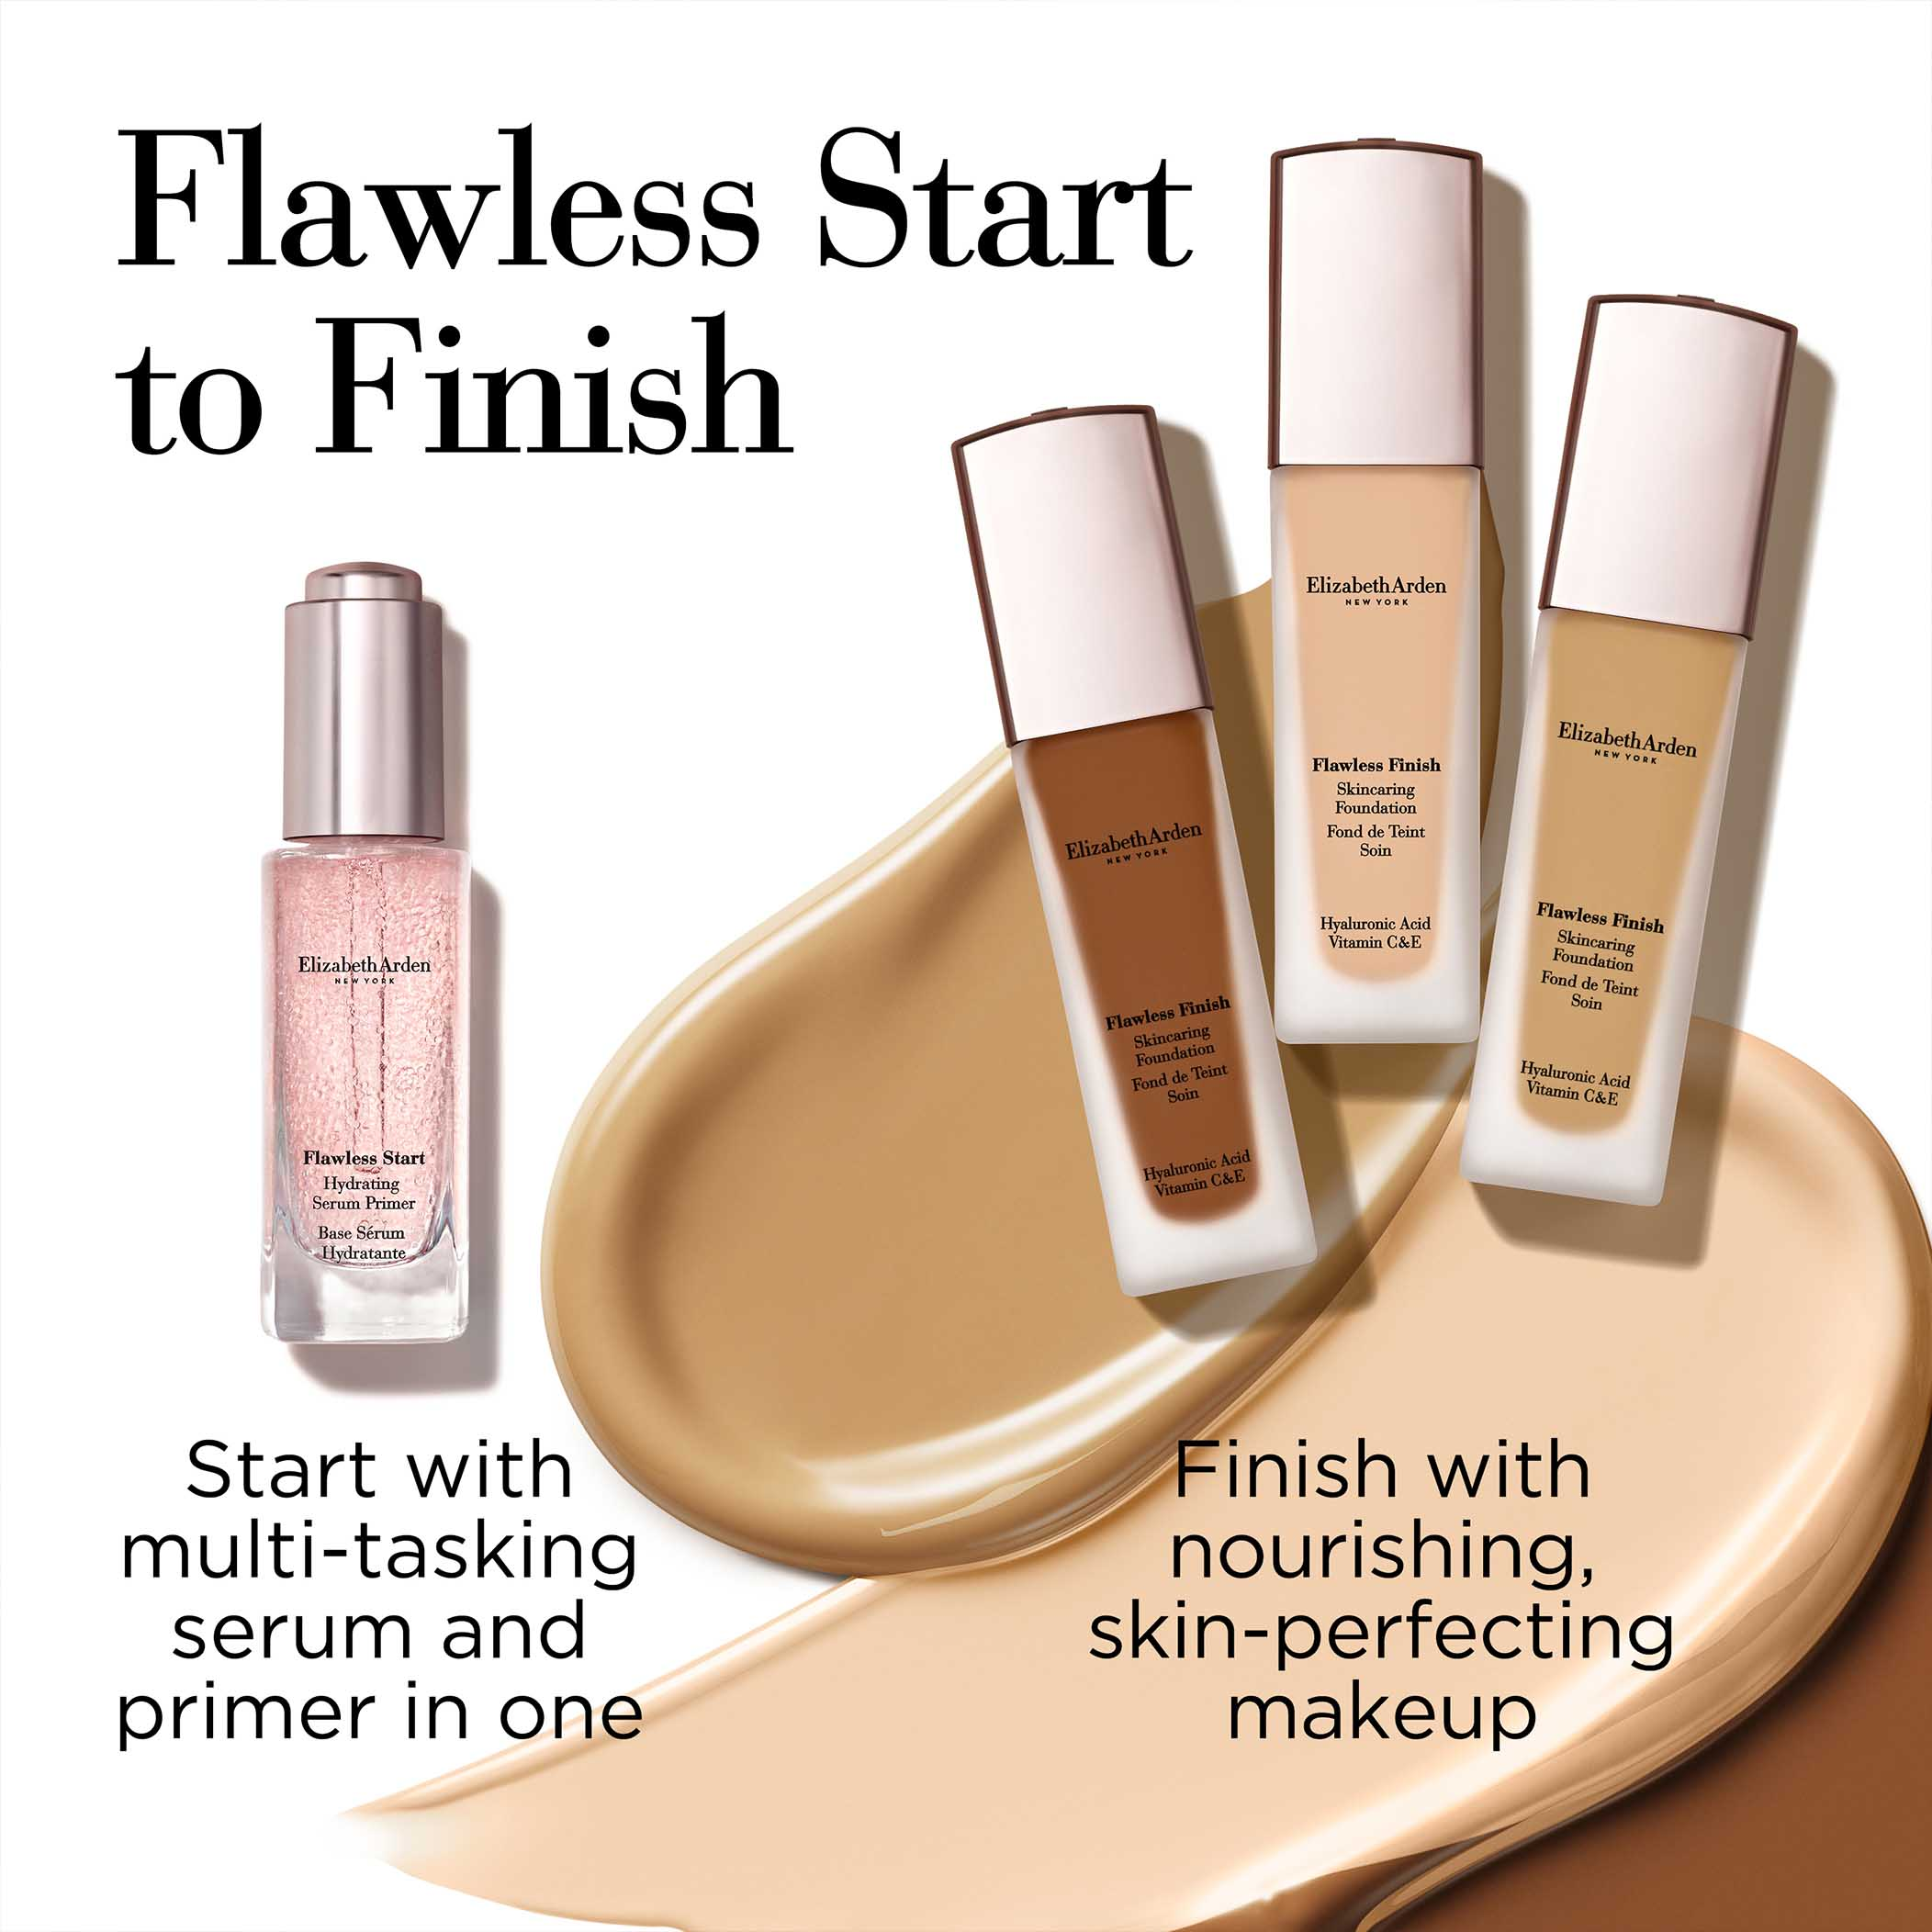 Flawless Start to Finish- Start with multi-tasking serum and primer in one. Then finish with nourishing, skin-perfecting makeup